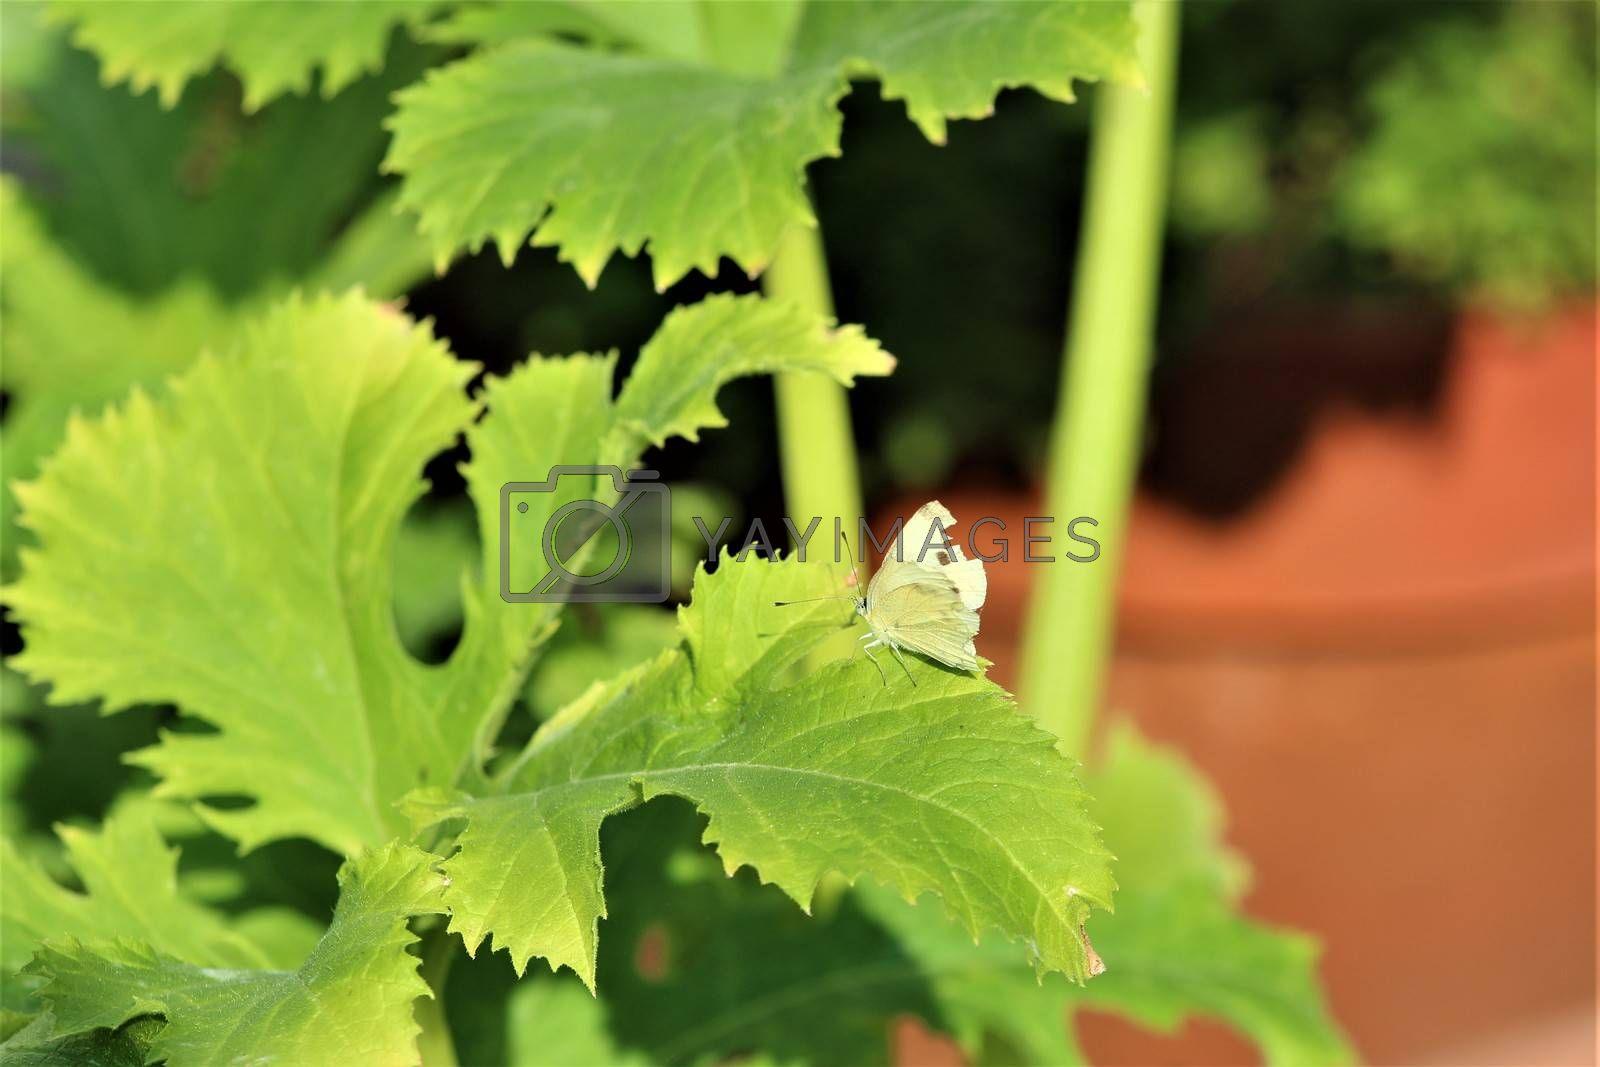 One cabbage white butterfly on a zucchini leaf